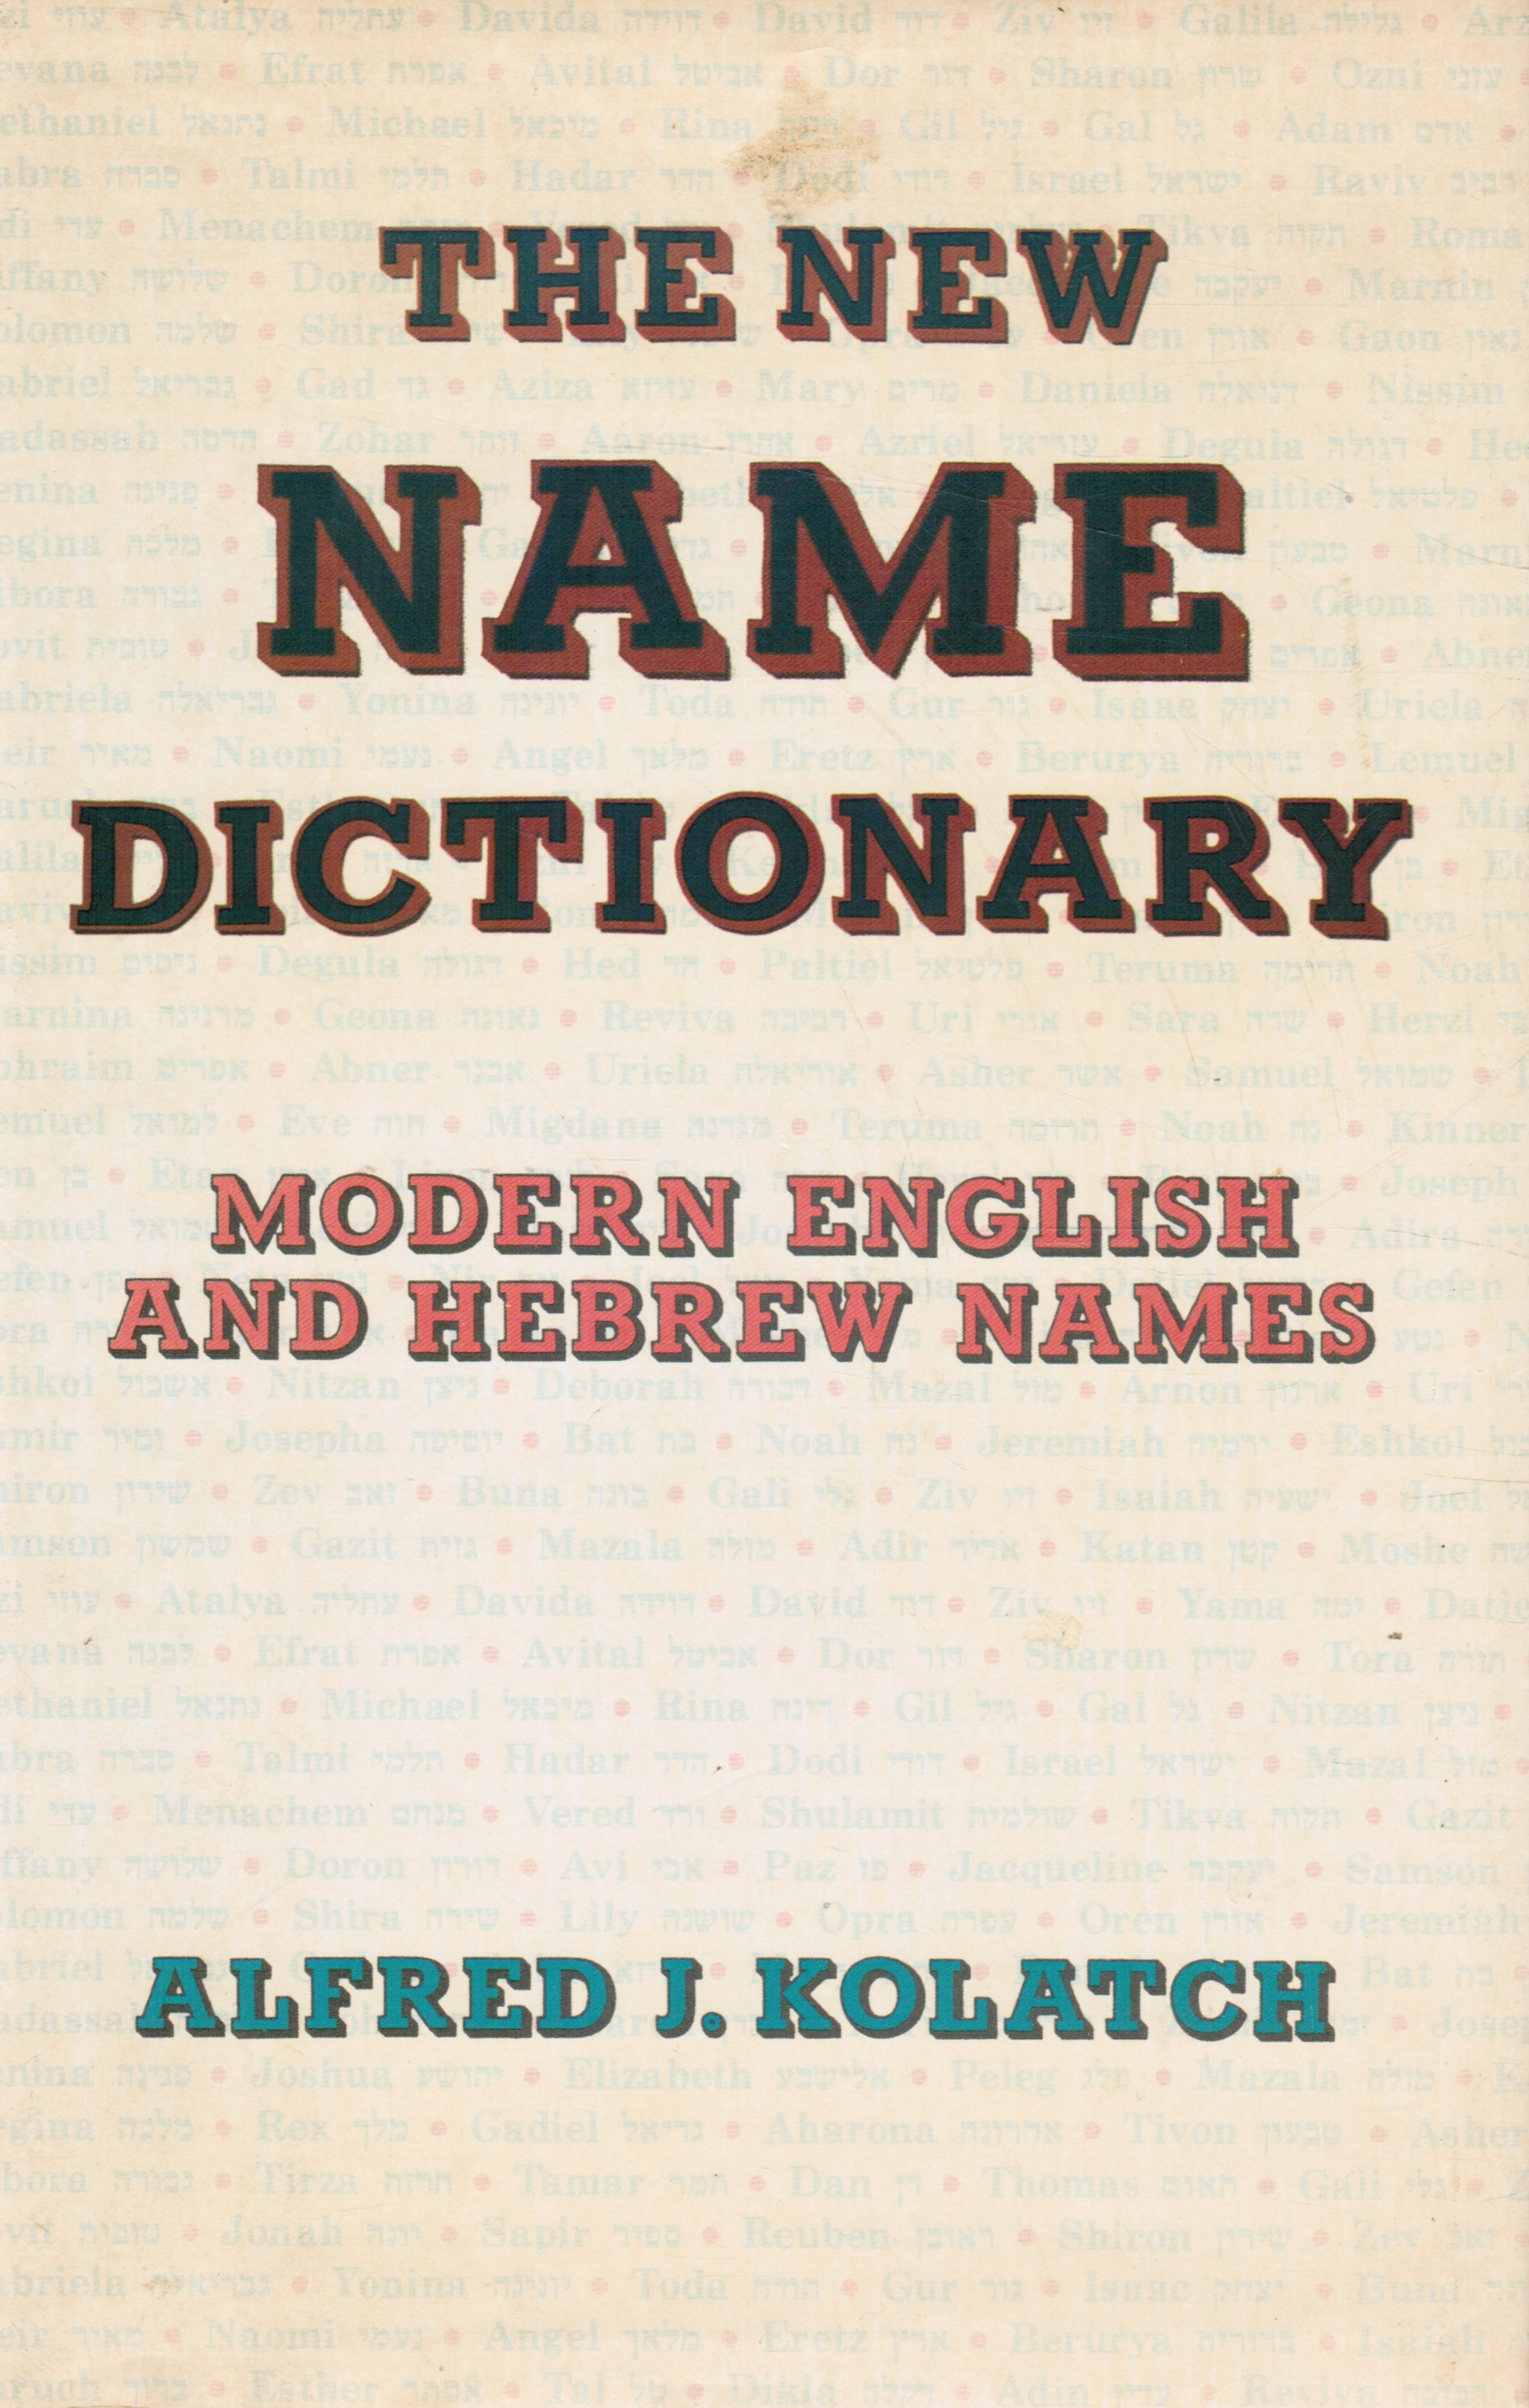 The New Name Dictionary: Modern English and Hebrew Names